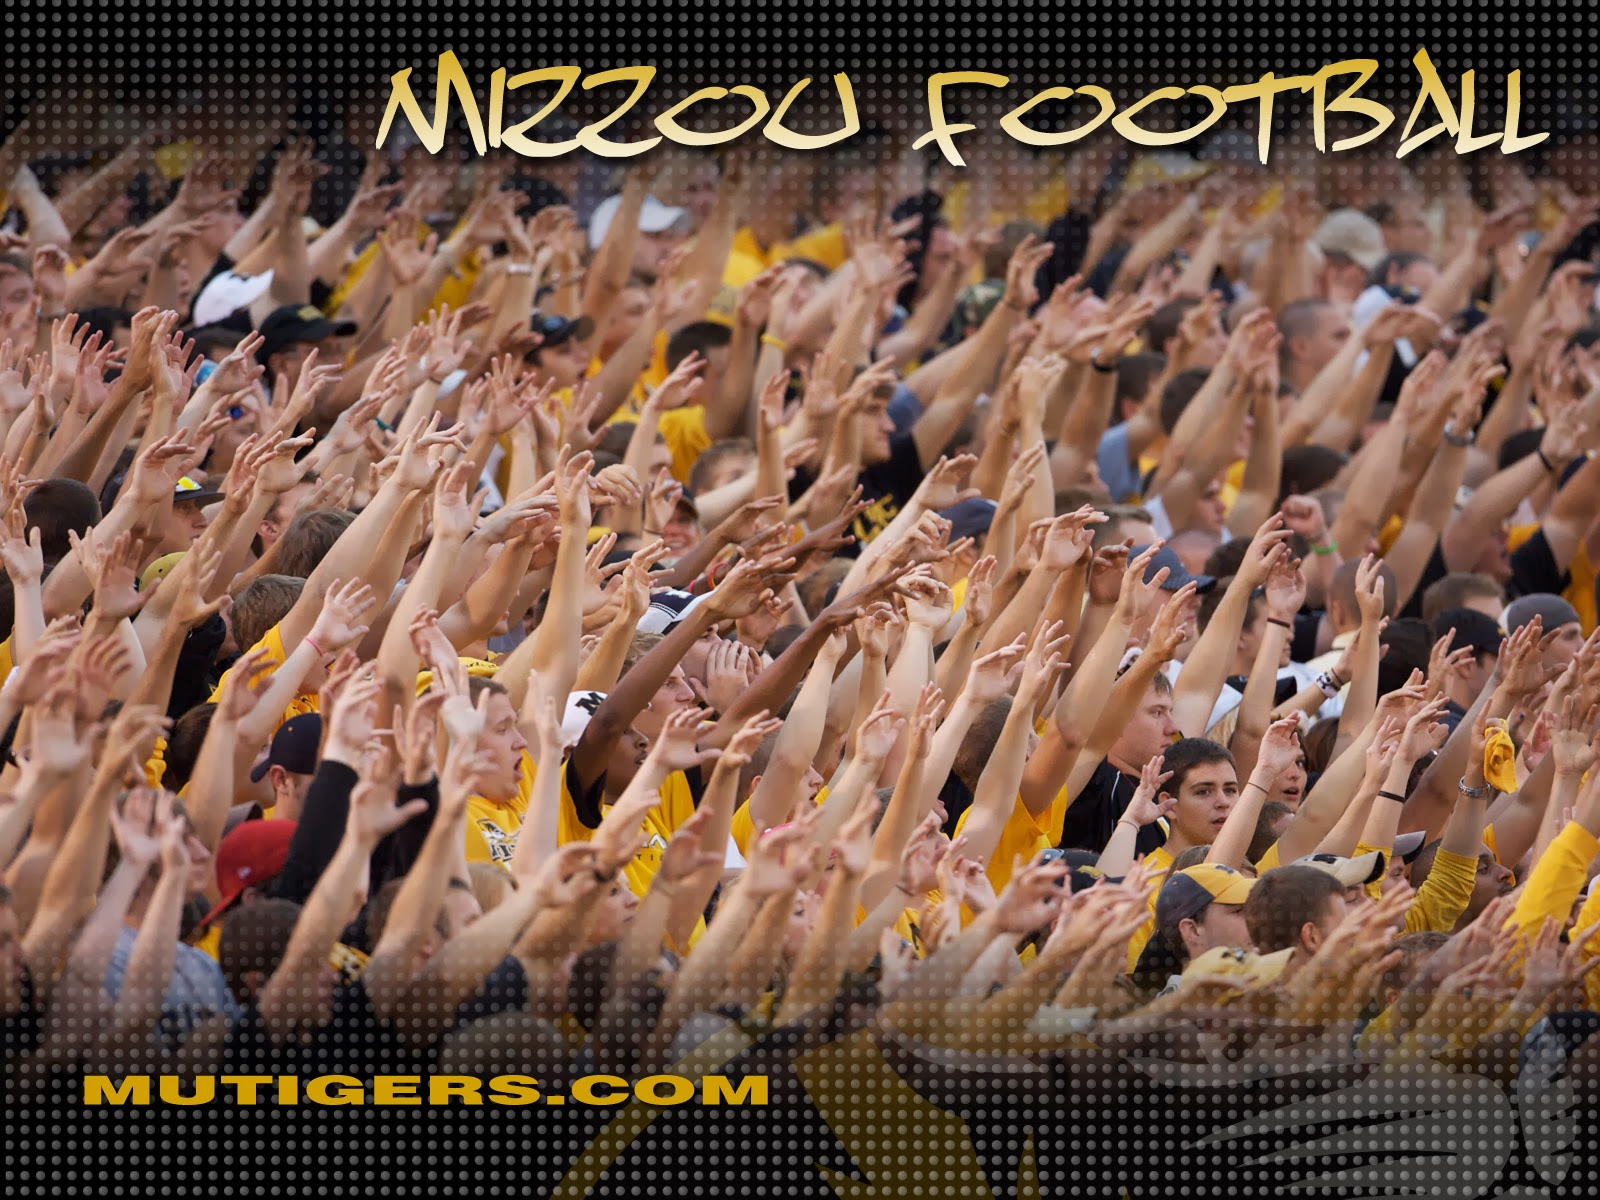 wallpapers mizzou football hd wallpapers mizzou football photos mizzou 1600x1200